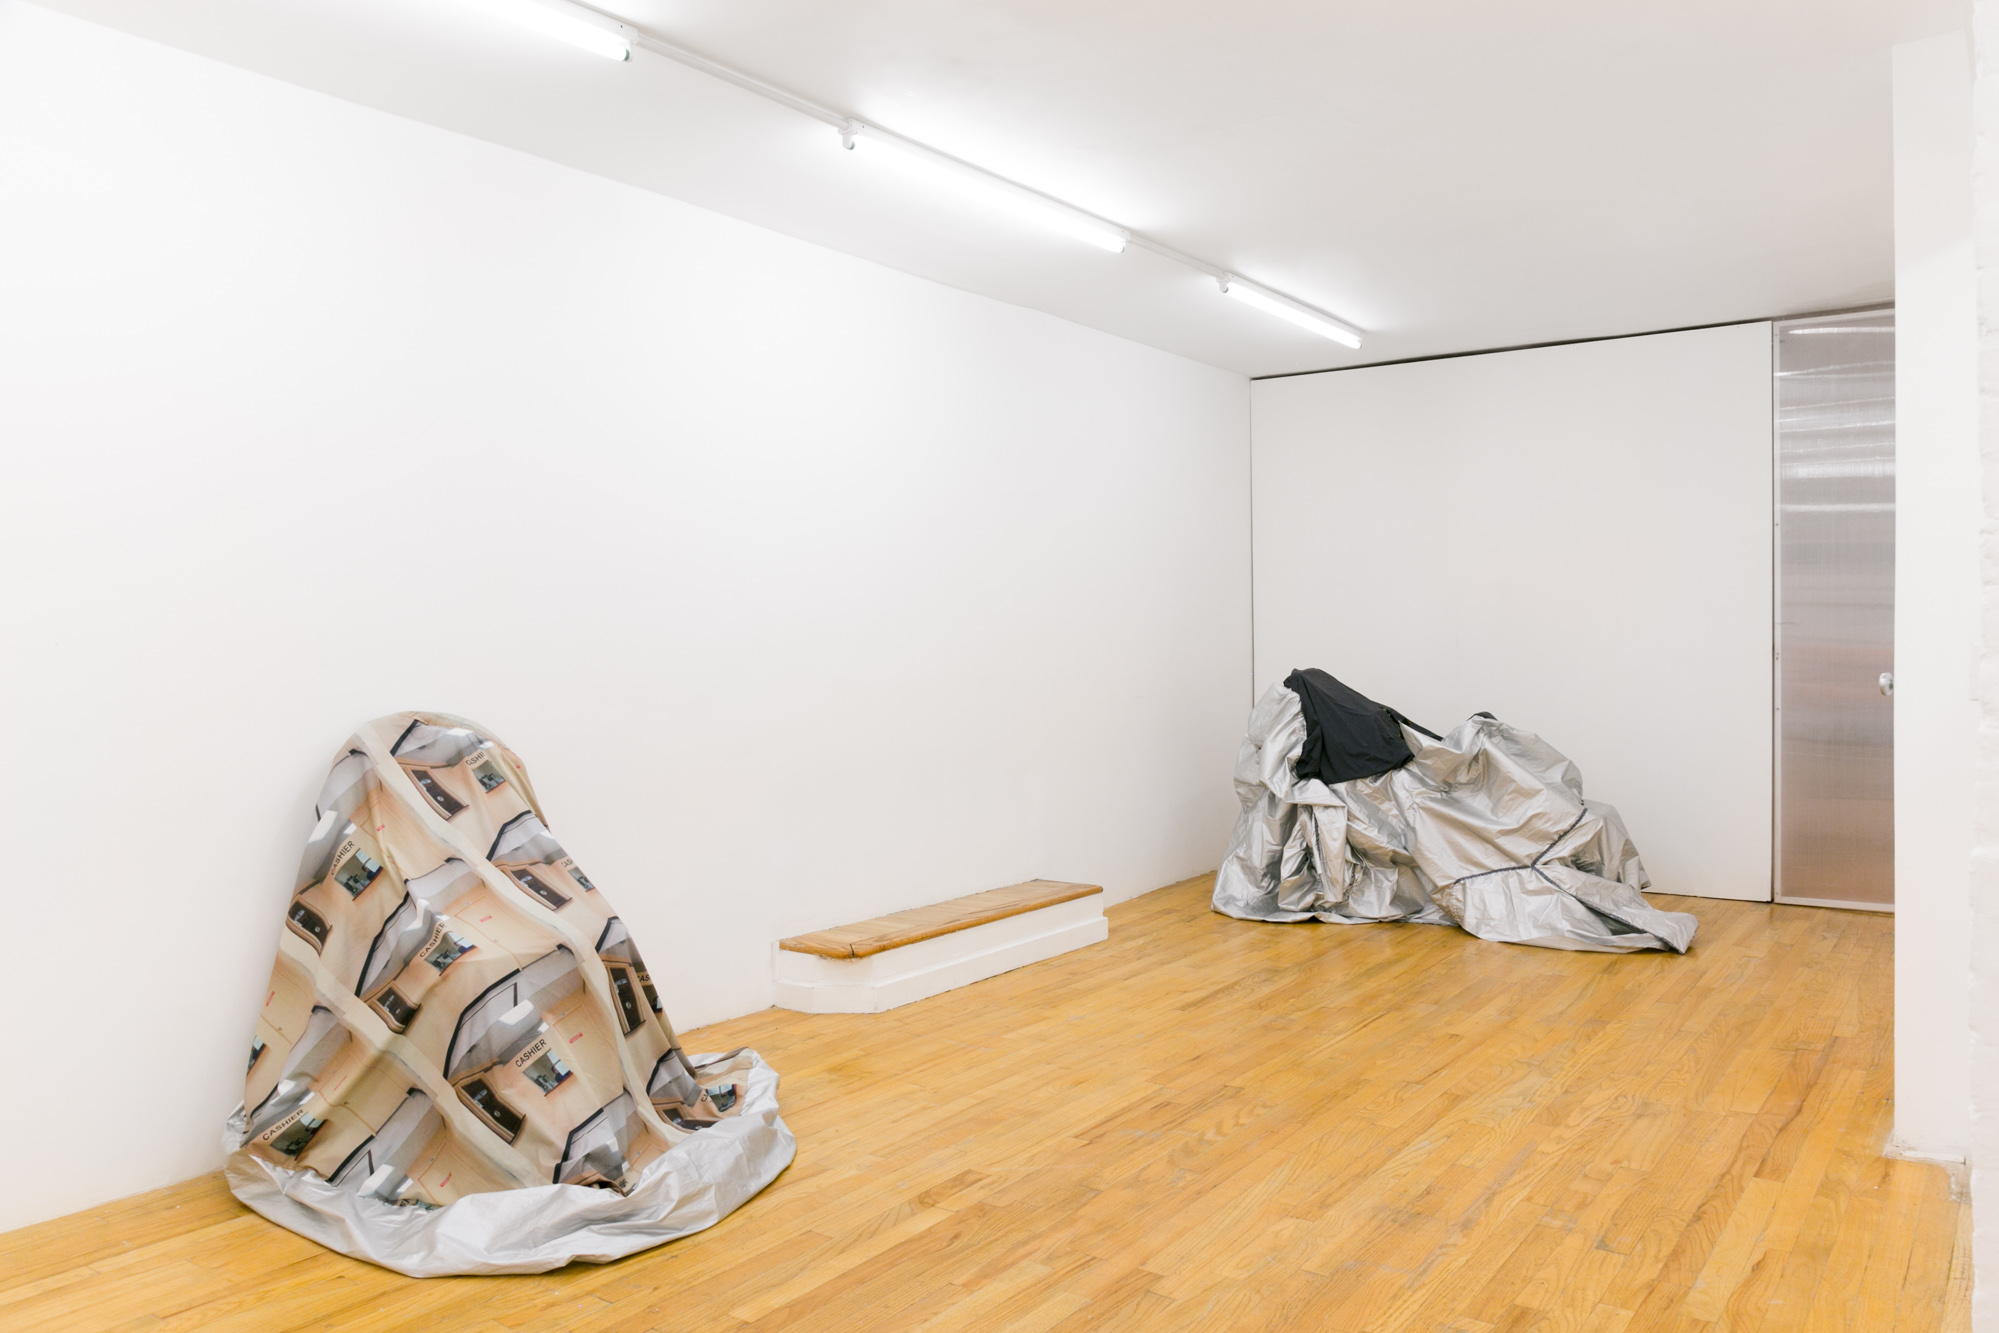 Installation view, Laura Hunt,  Motorcycle Covers , 2018, 321 Gallery, Brooklyn, NY.